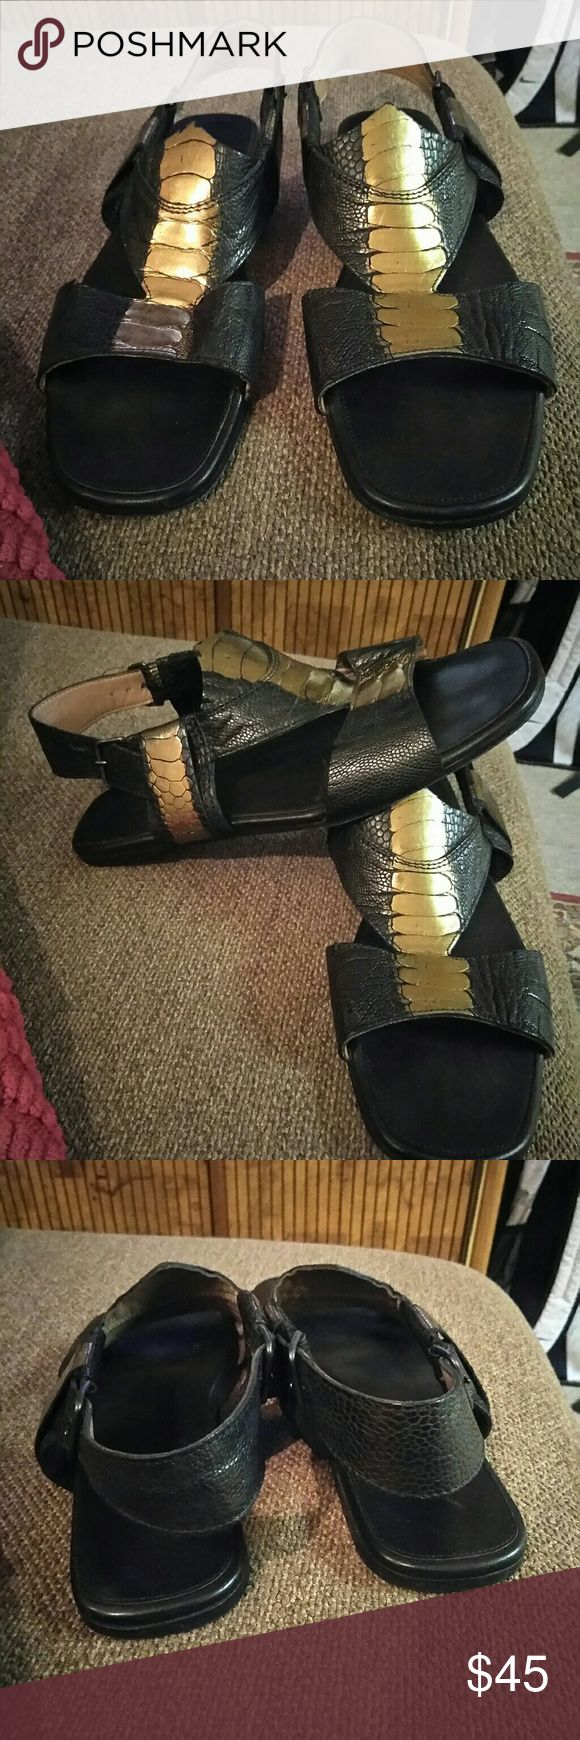 Sigerson Morrison leather Sandals Sigerson Morrison leather Sandals, preloved in good condition, has a little wear on bottom but nothing on heel. Sigerson Morrison Shoes Sandals